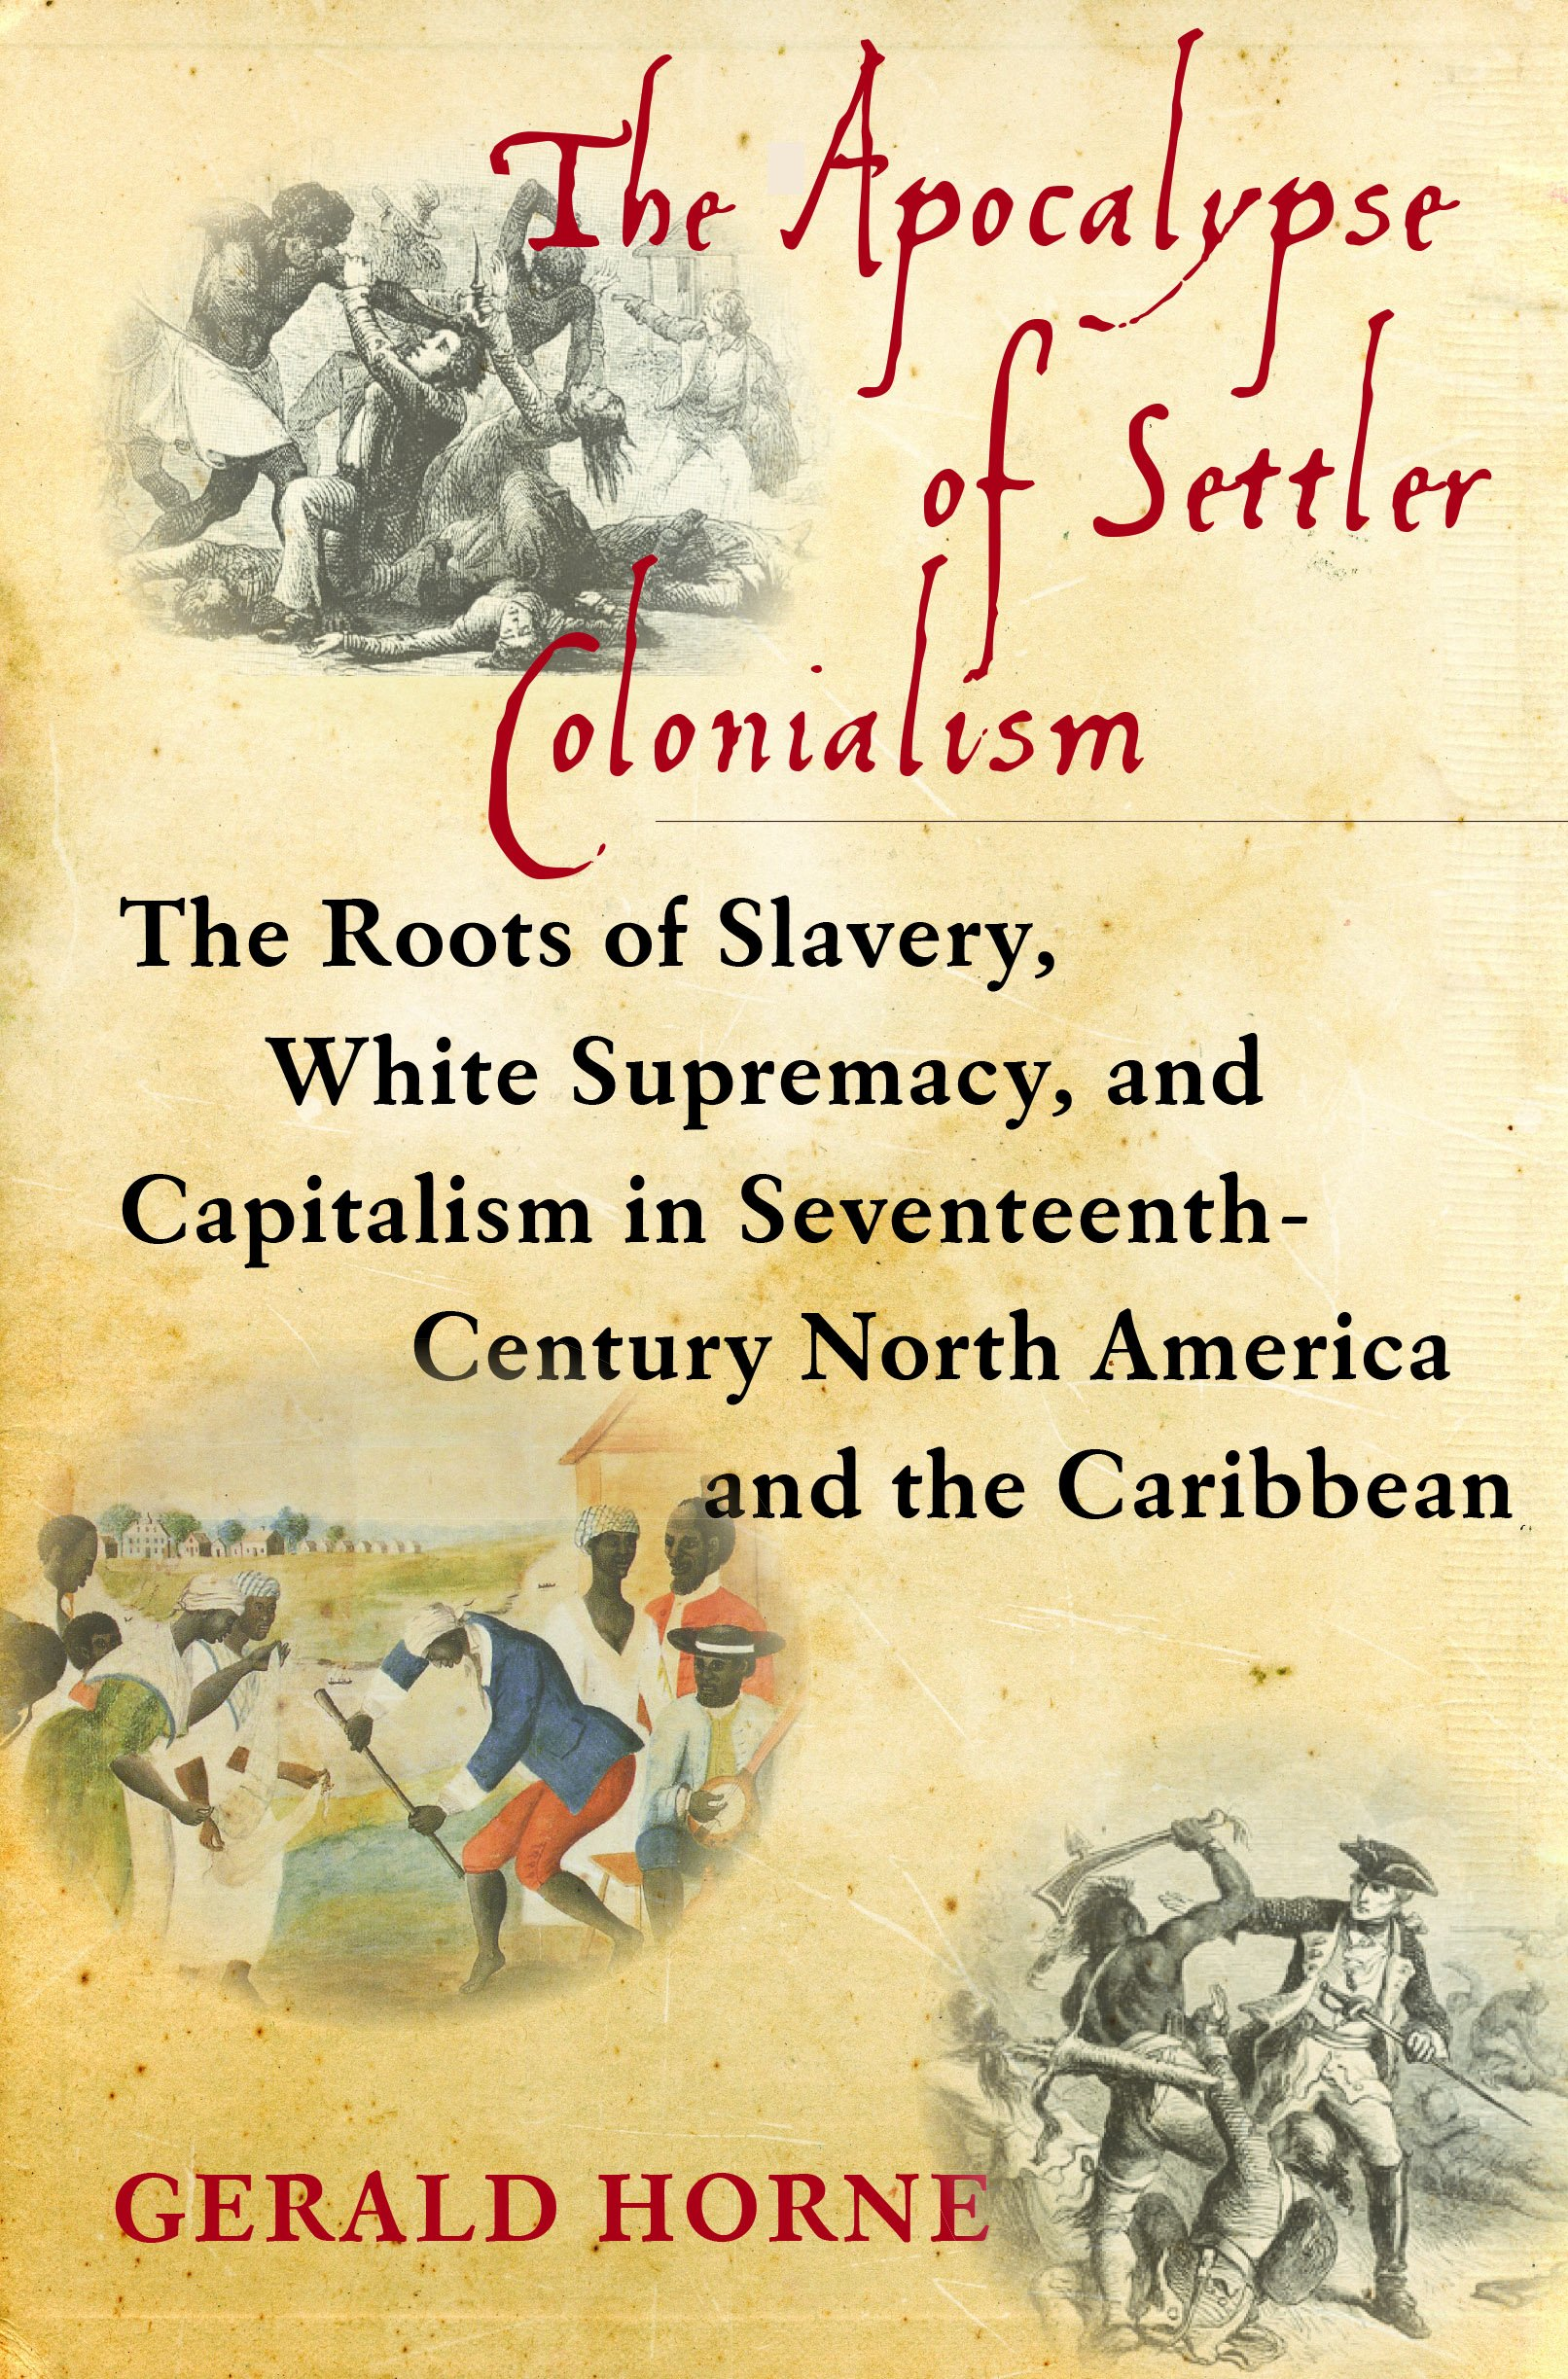 b91ec28e0 The Apocalypse of Settler Colonialism: The Roots of Slavery, White ...